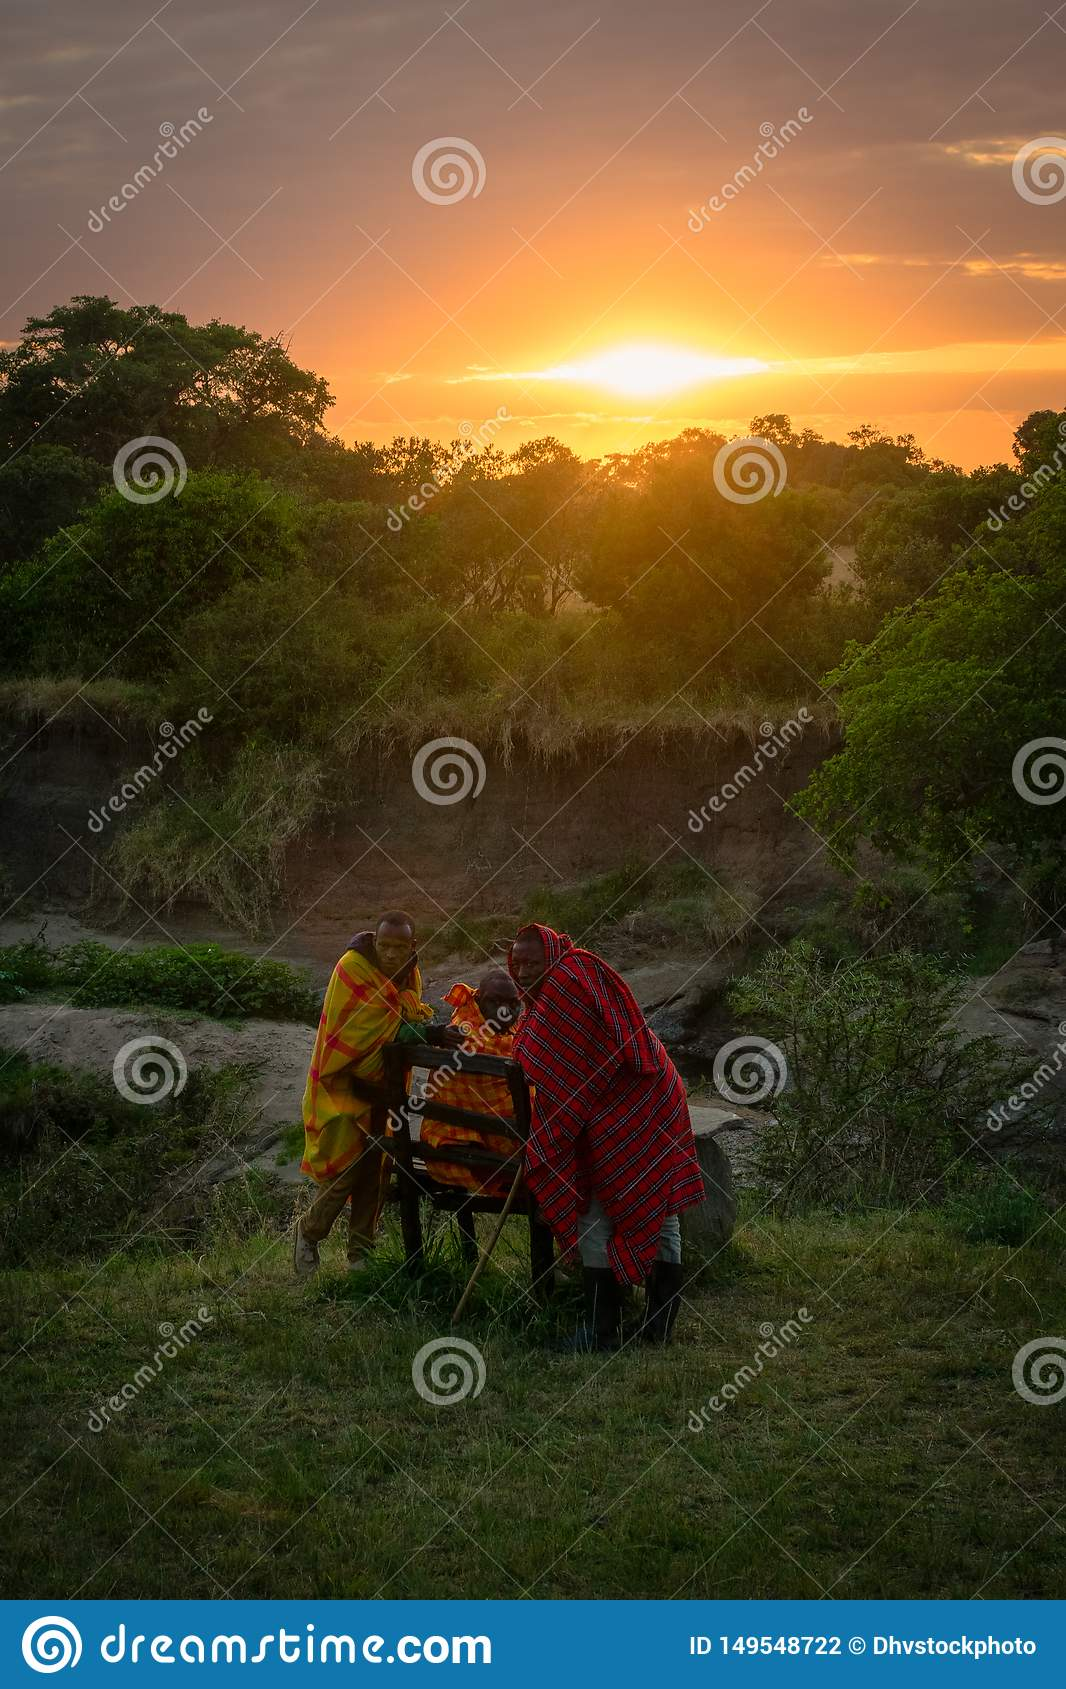 Masai Mara, Kenya, Africa – August 10, 2018: A group of Masai men in traditional clothes resting at dawn after a long night